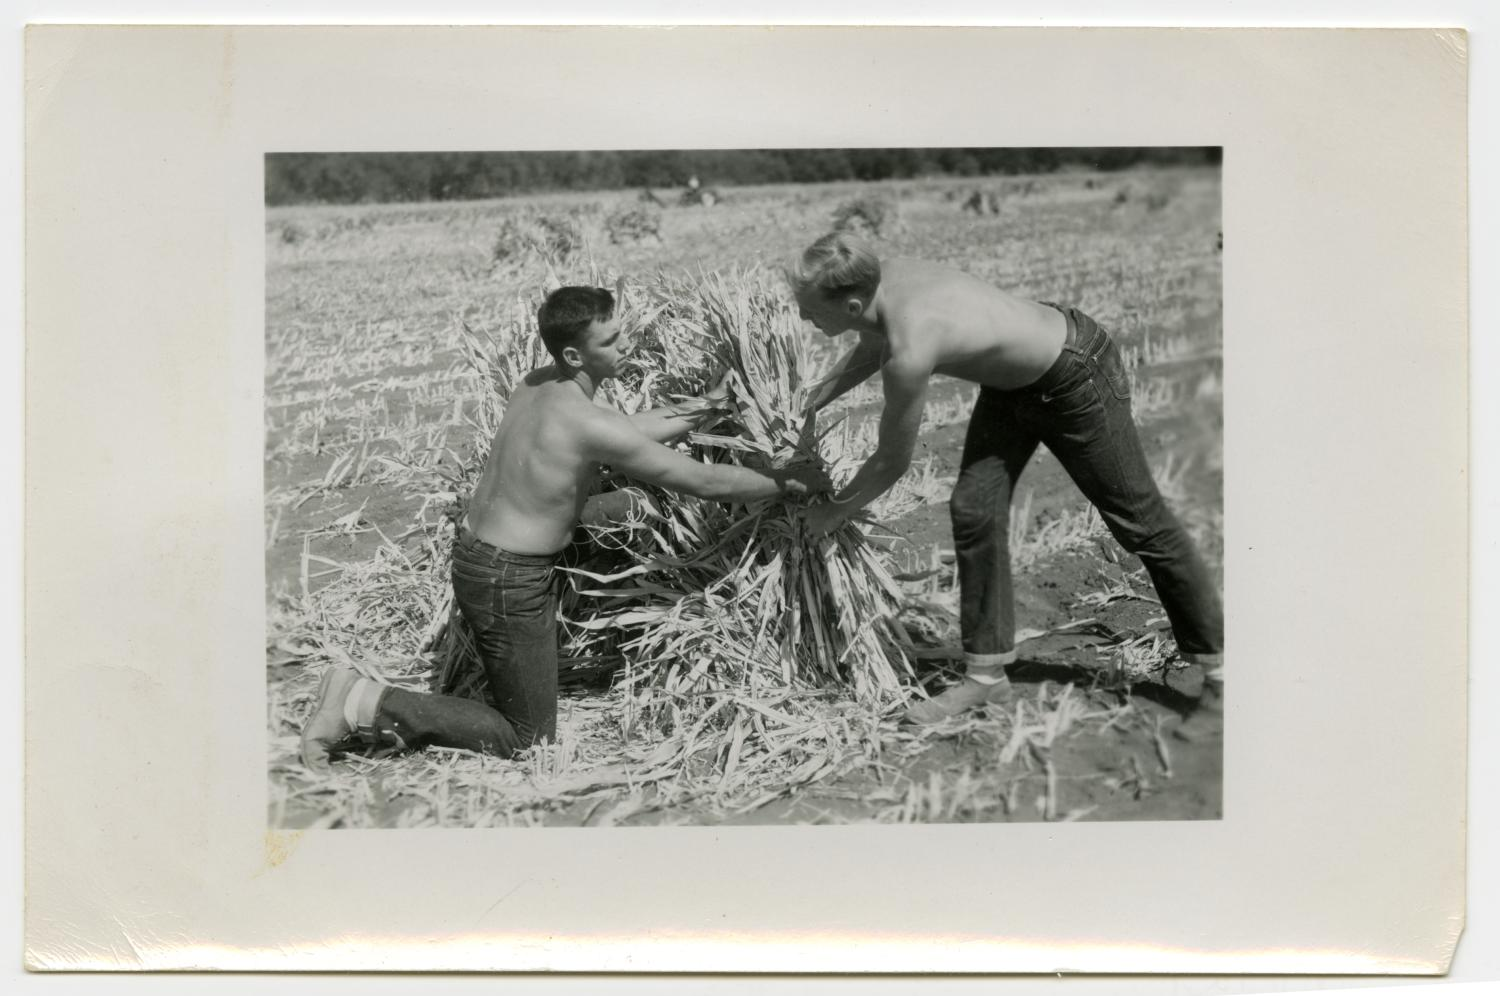 Agricultural and Animal Husbandry Students and Friends, Two Shirtless Men Harvesting, 1950's                                                                                                      [Sequence #]: 1 of 2